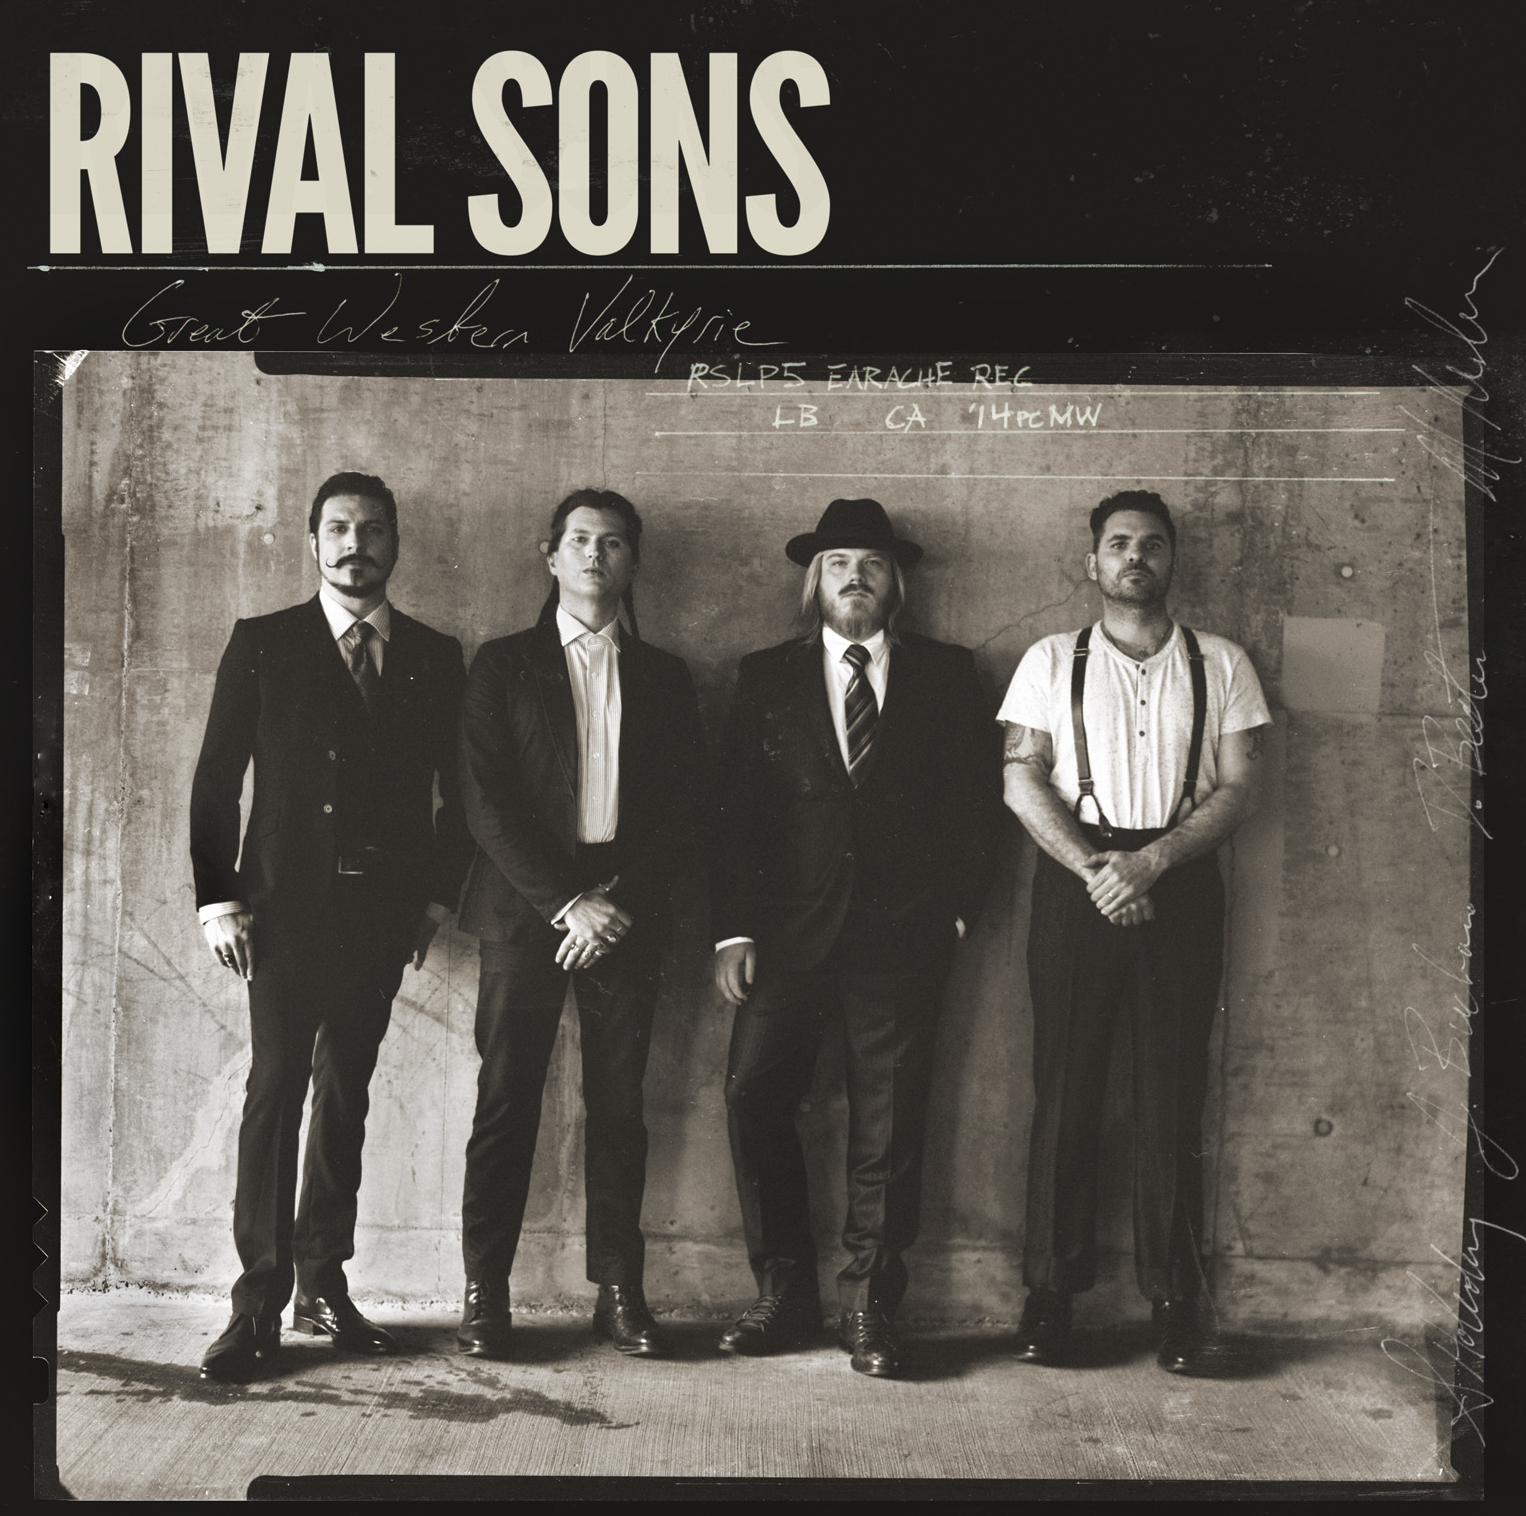 06. Rival Sons GREAT WESTERN VALKYRIE